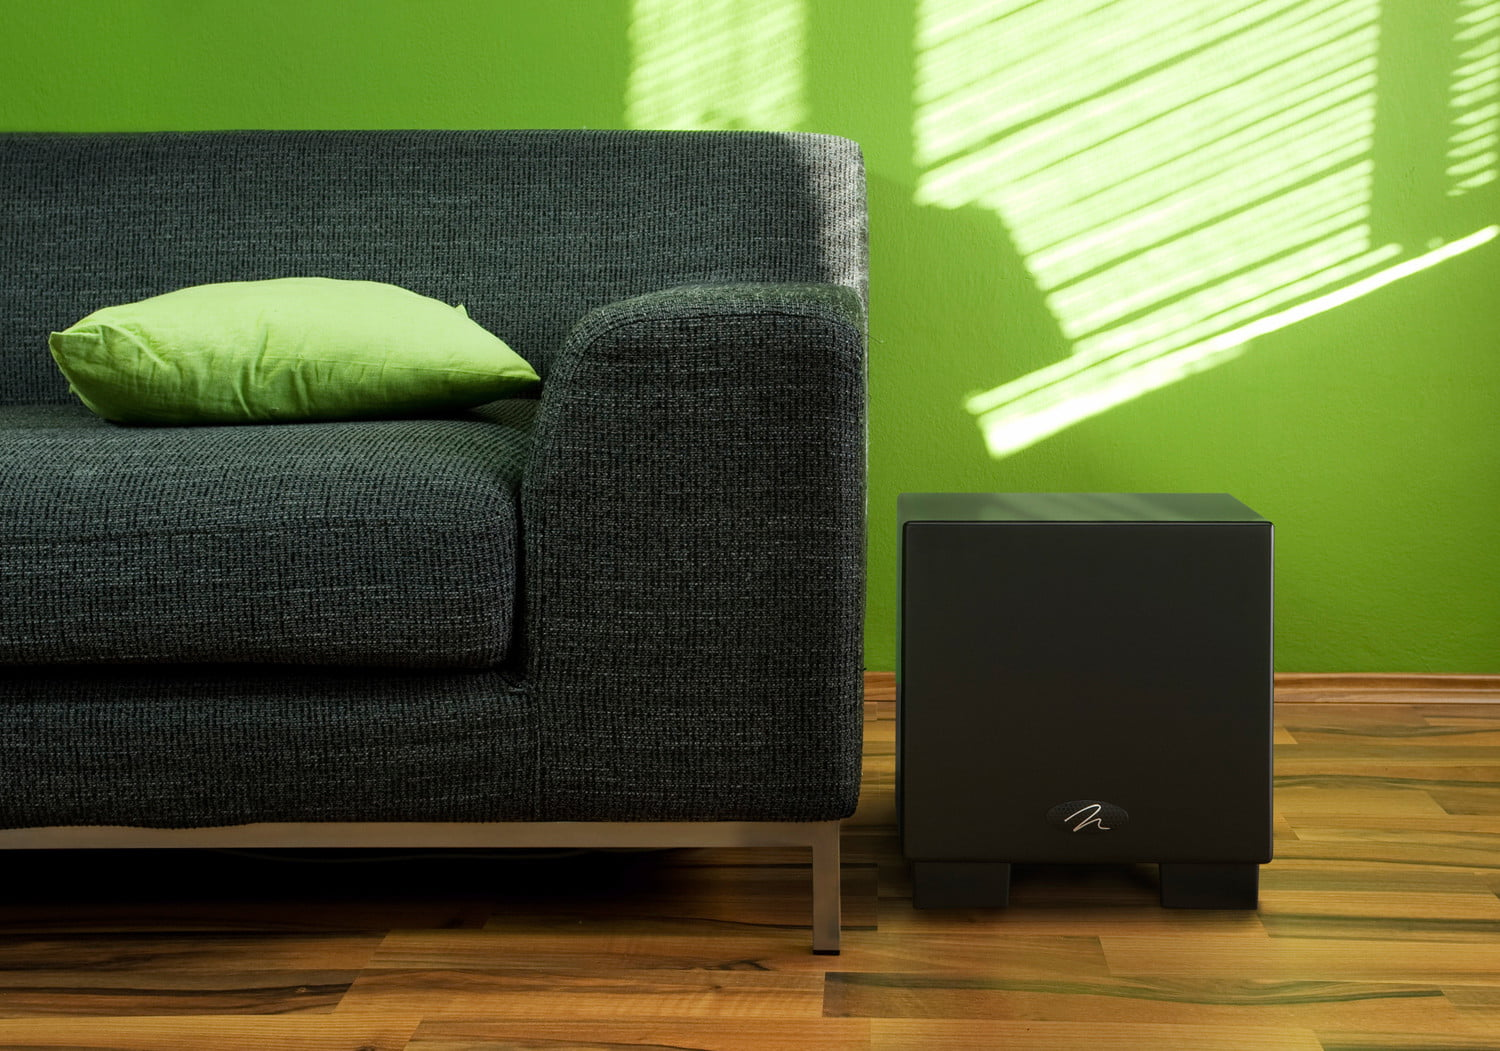 Subwoofer 101 How To Place And Setup Your Subwoofer